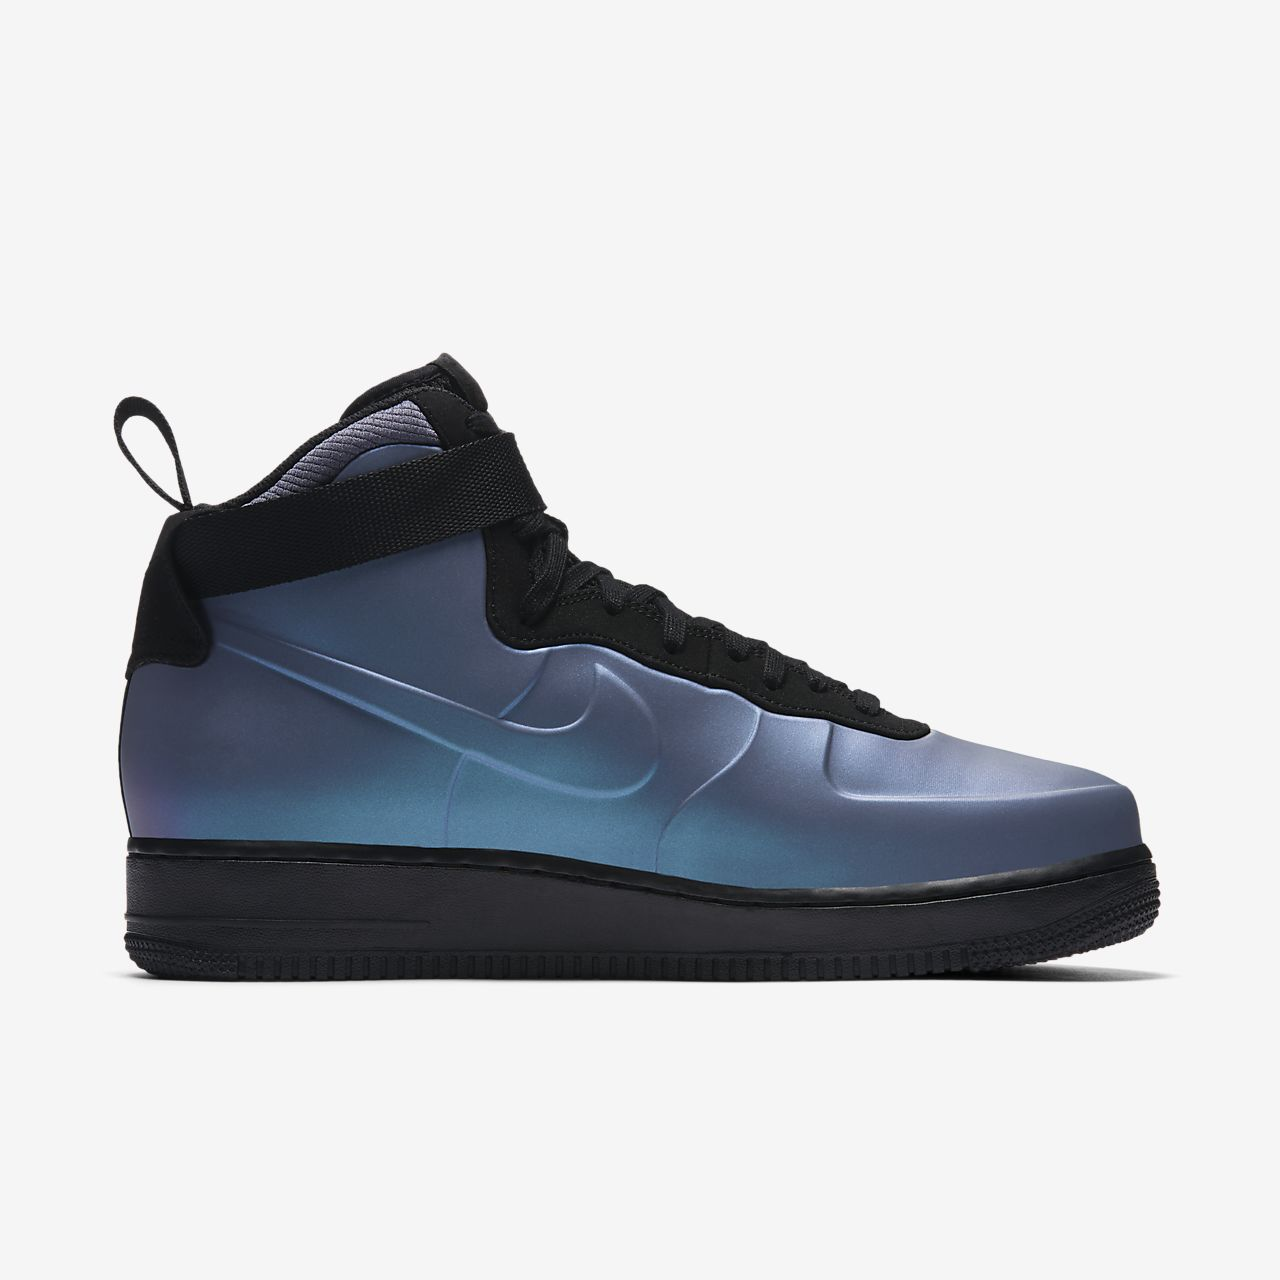 air force 1 foamposite low nz